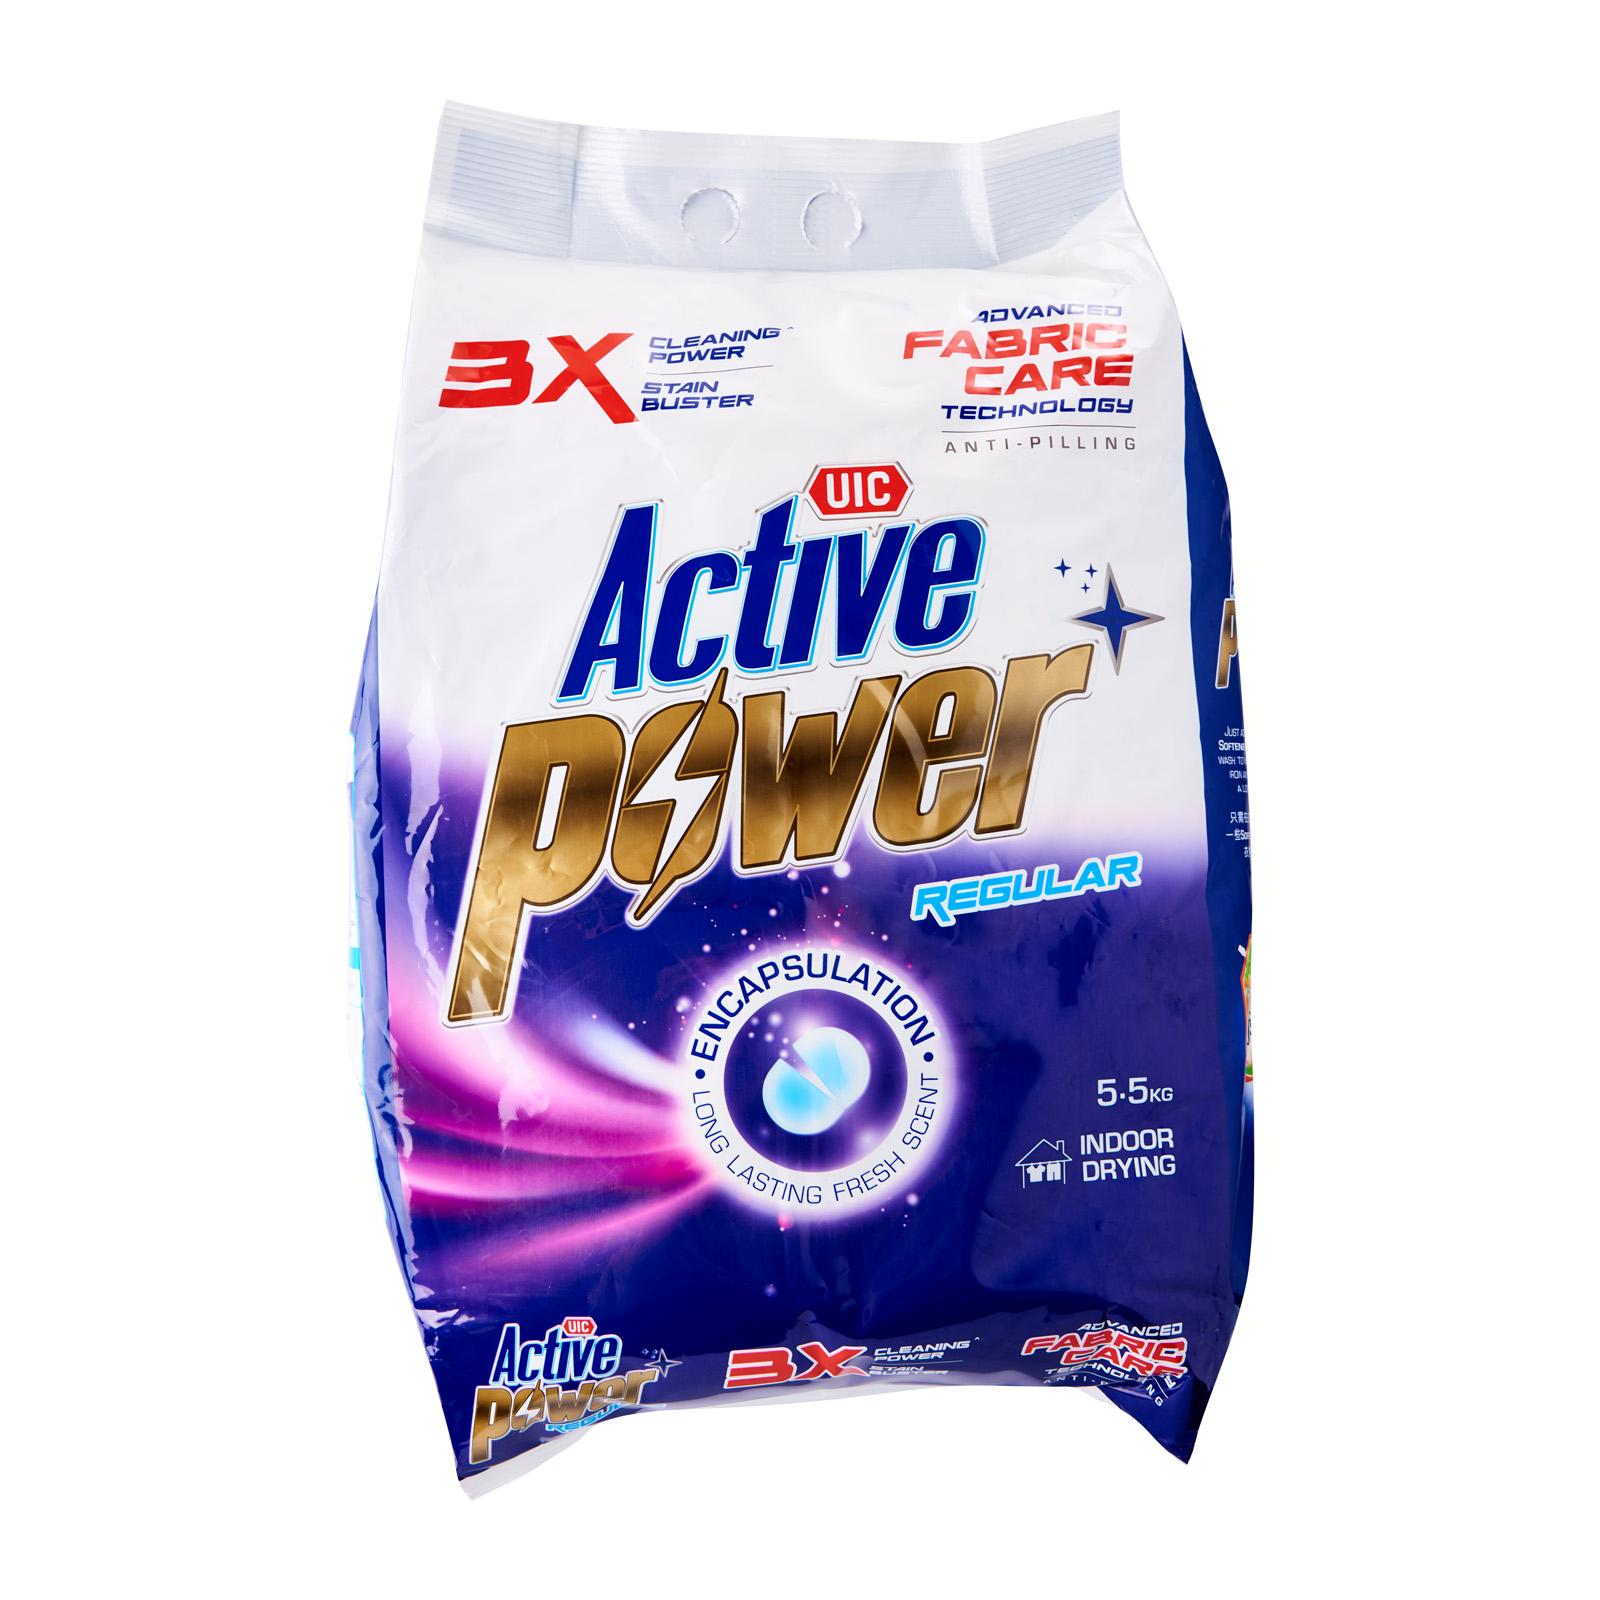 UIC Active Power+ Regular Powder Laundry Detergent 5.5KG